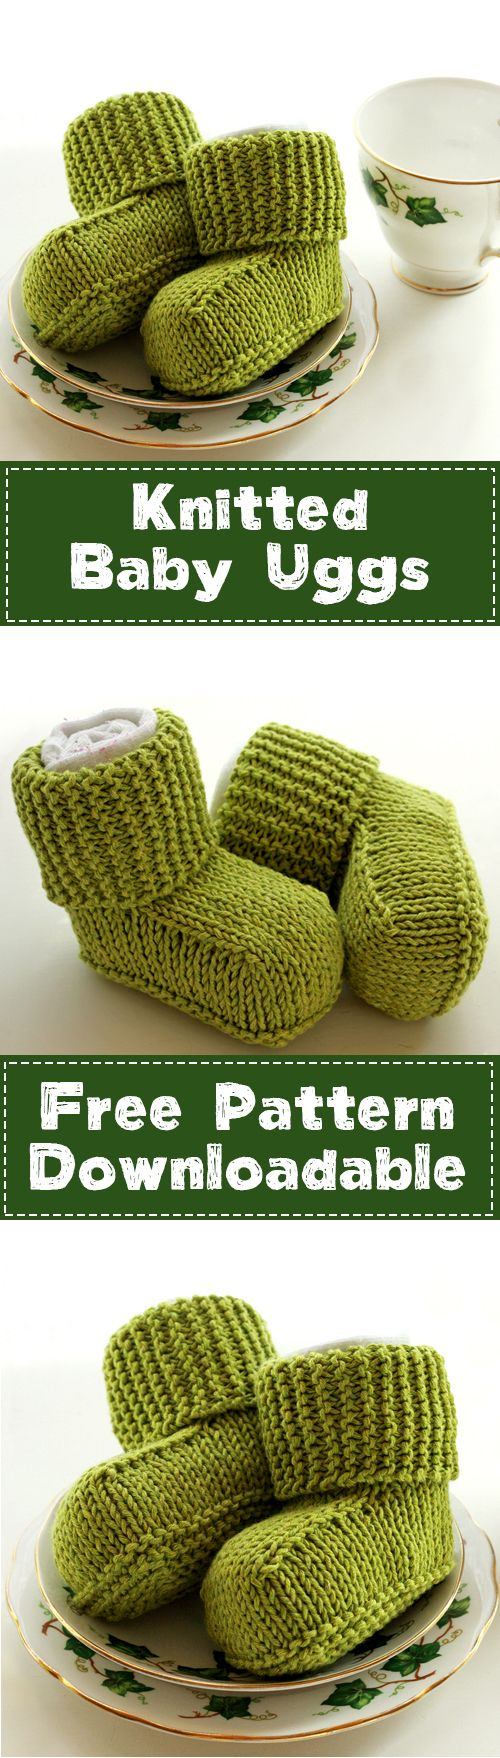 Downloadable PDF free knitting pattern for baby uggs. A cute free pattern for…